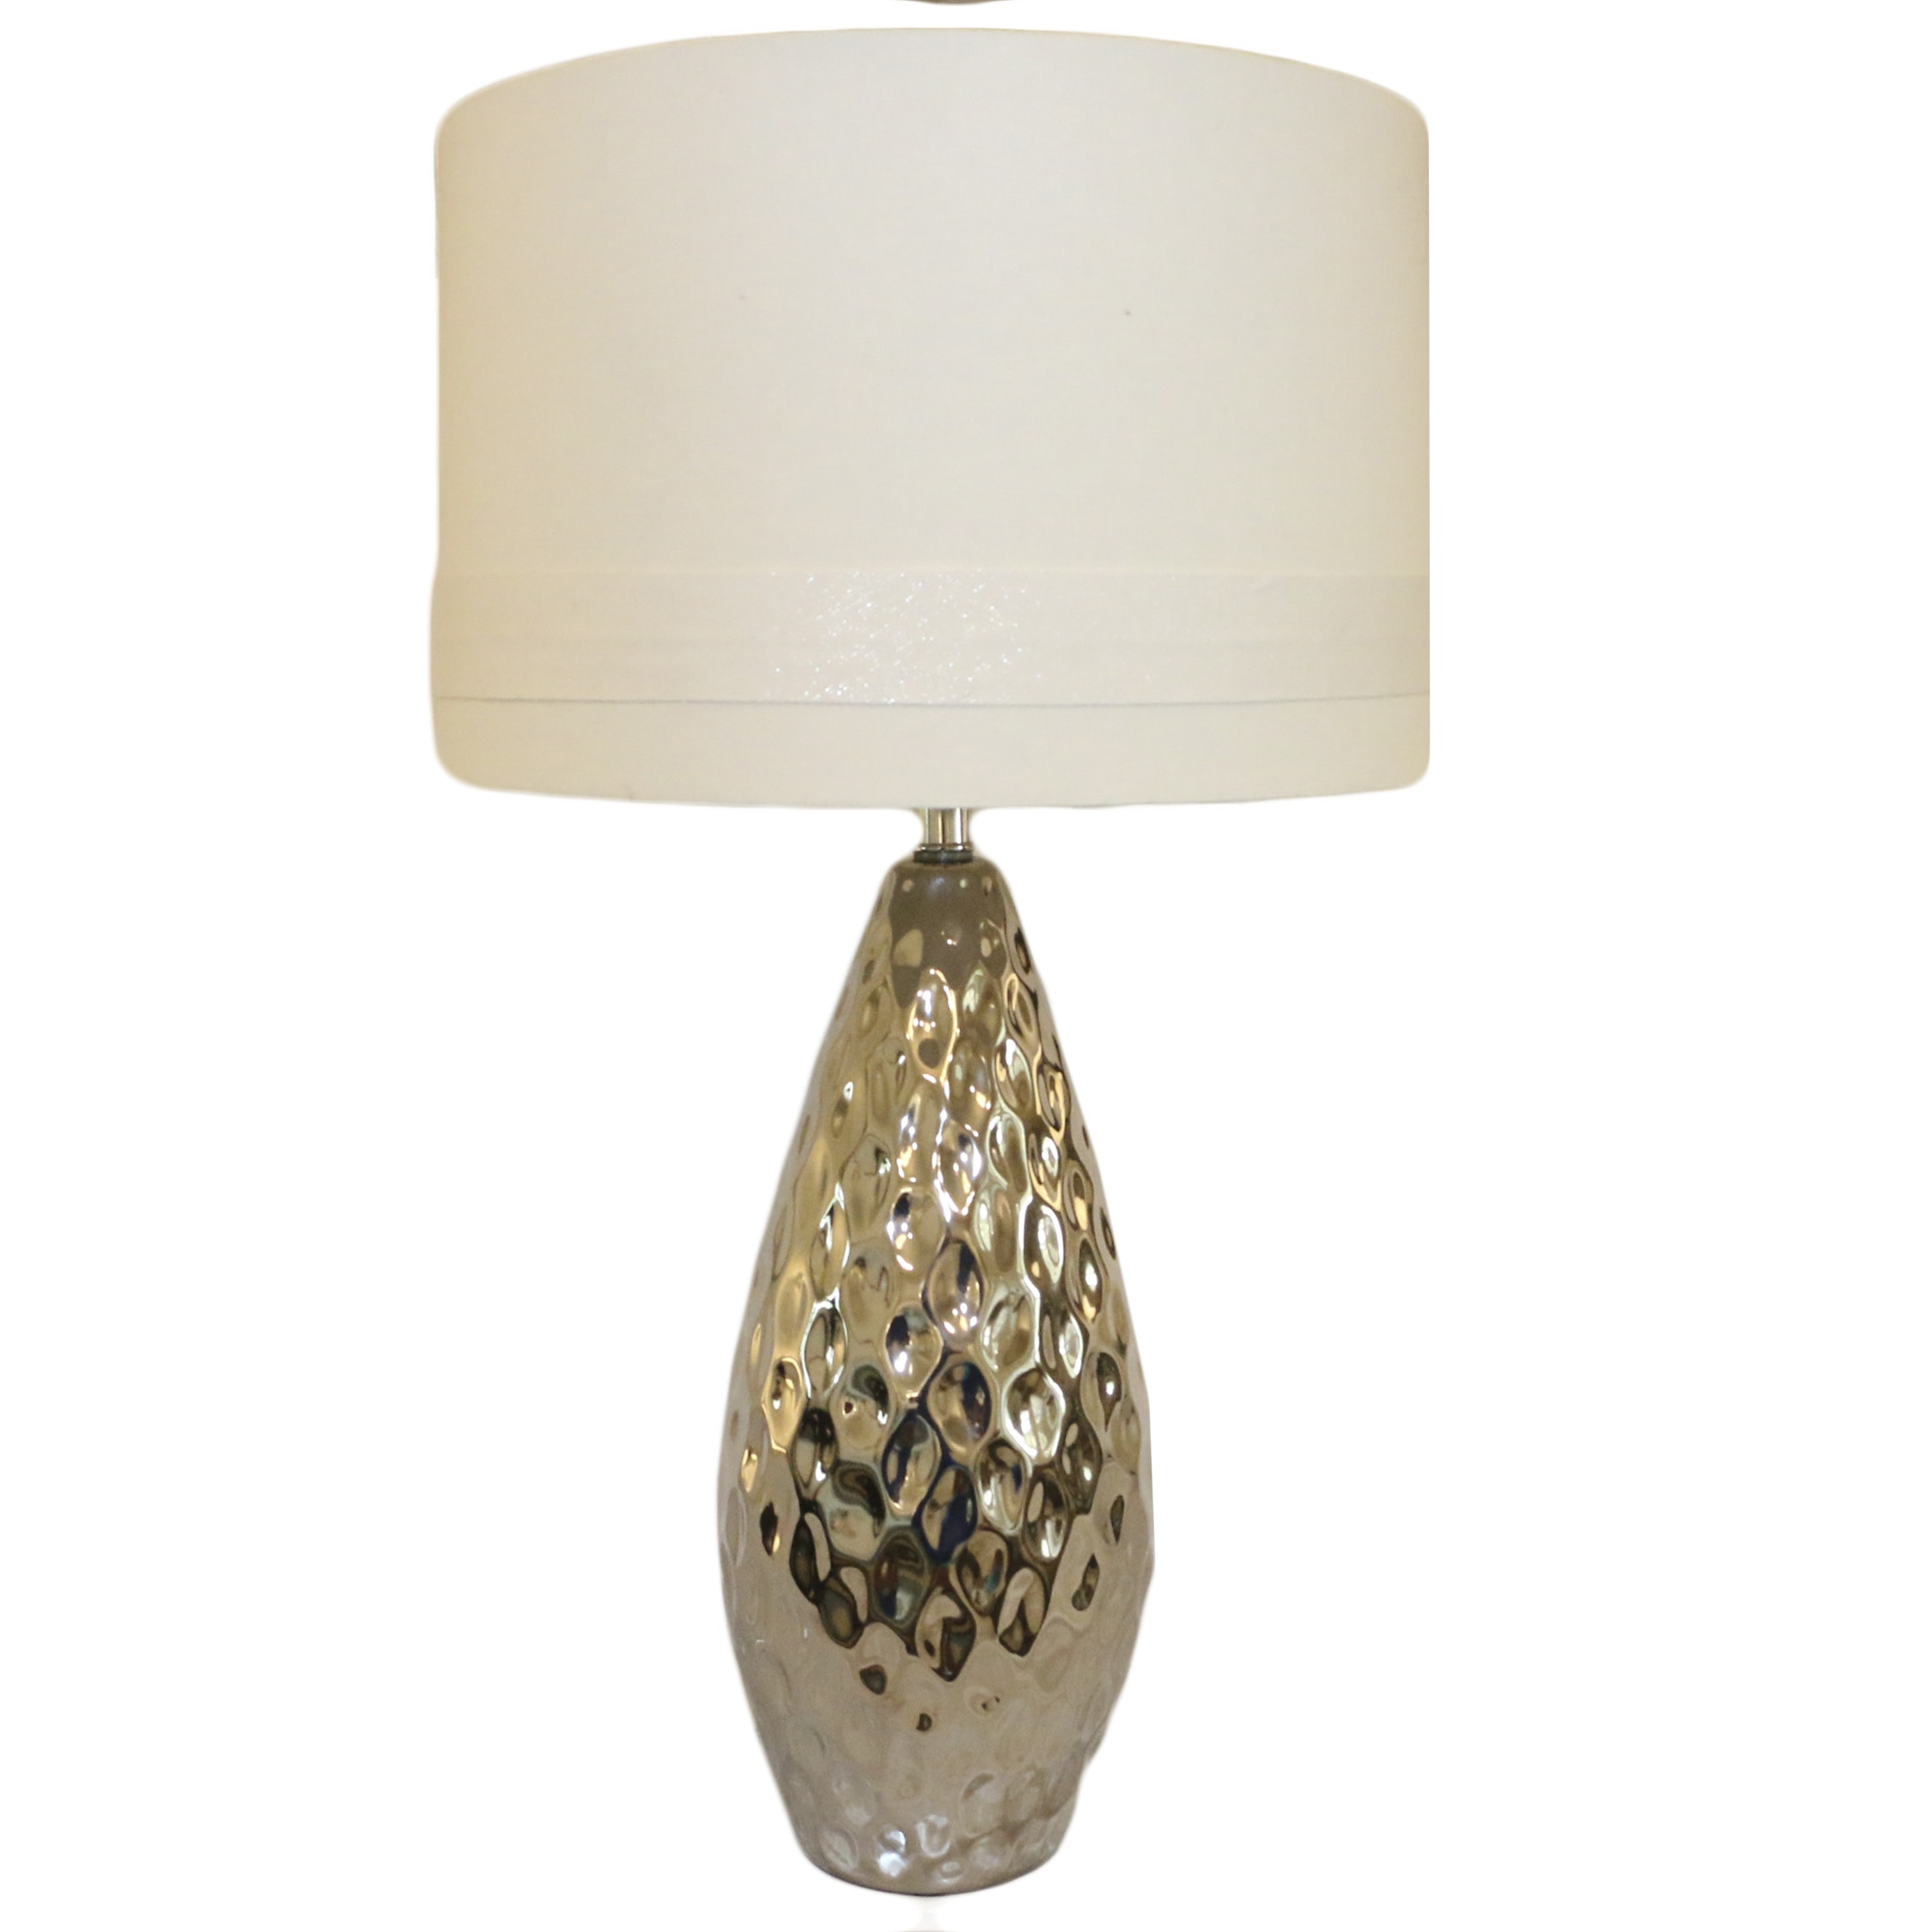 Metallic Ovoid Table Lamp with Barrel Shade